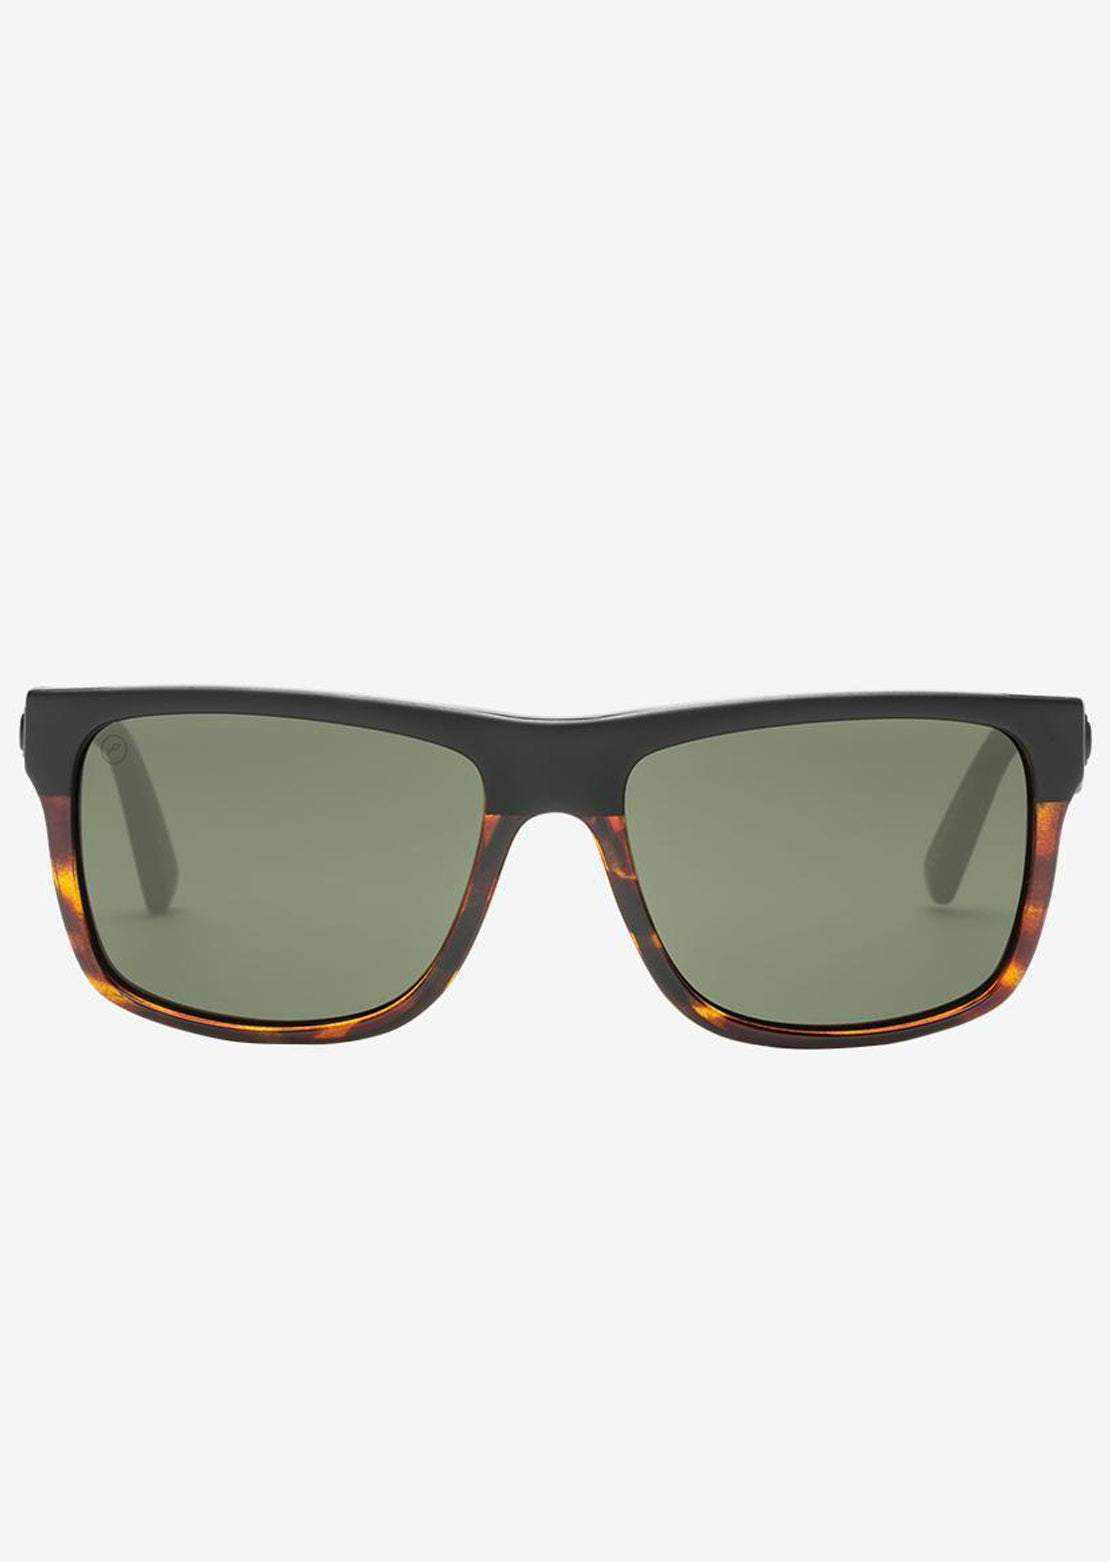 Electric Men's Swingarm Polarized Sunglasses Tortoise Burst/Grey